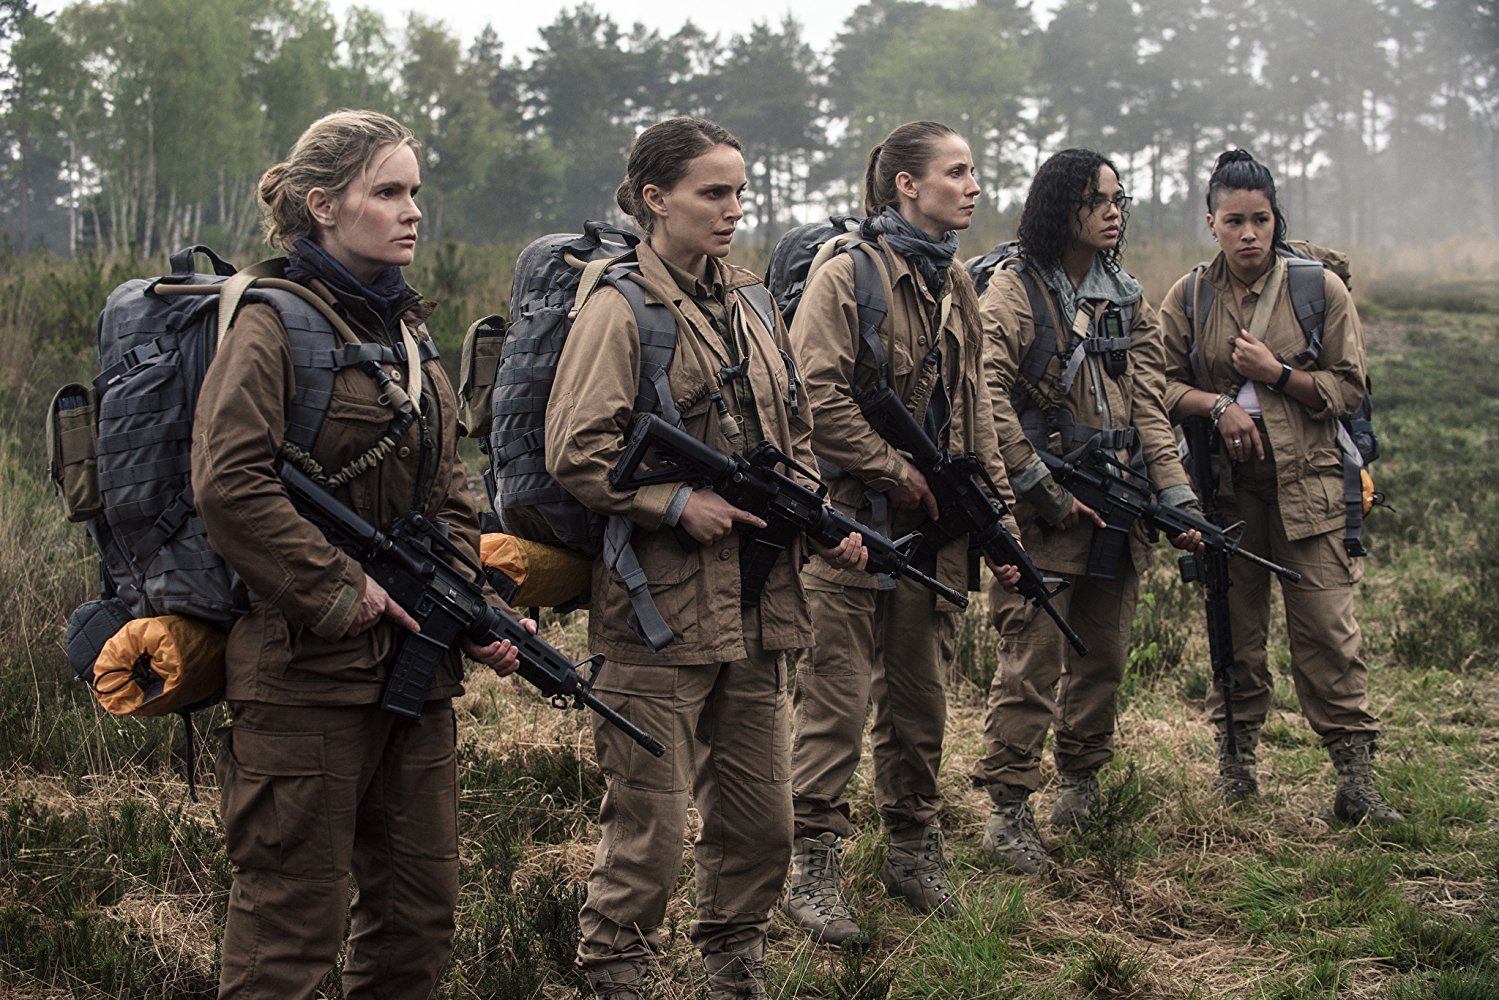 'Annihilation' is a captivating Sci-Fi story that will leave you breathless